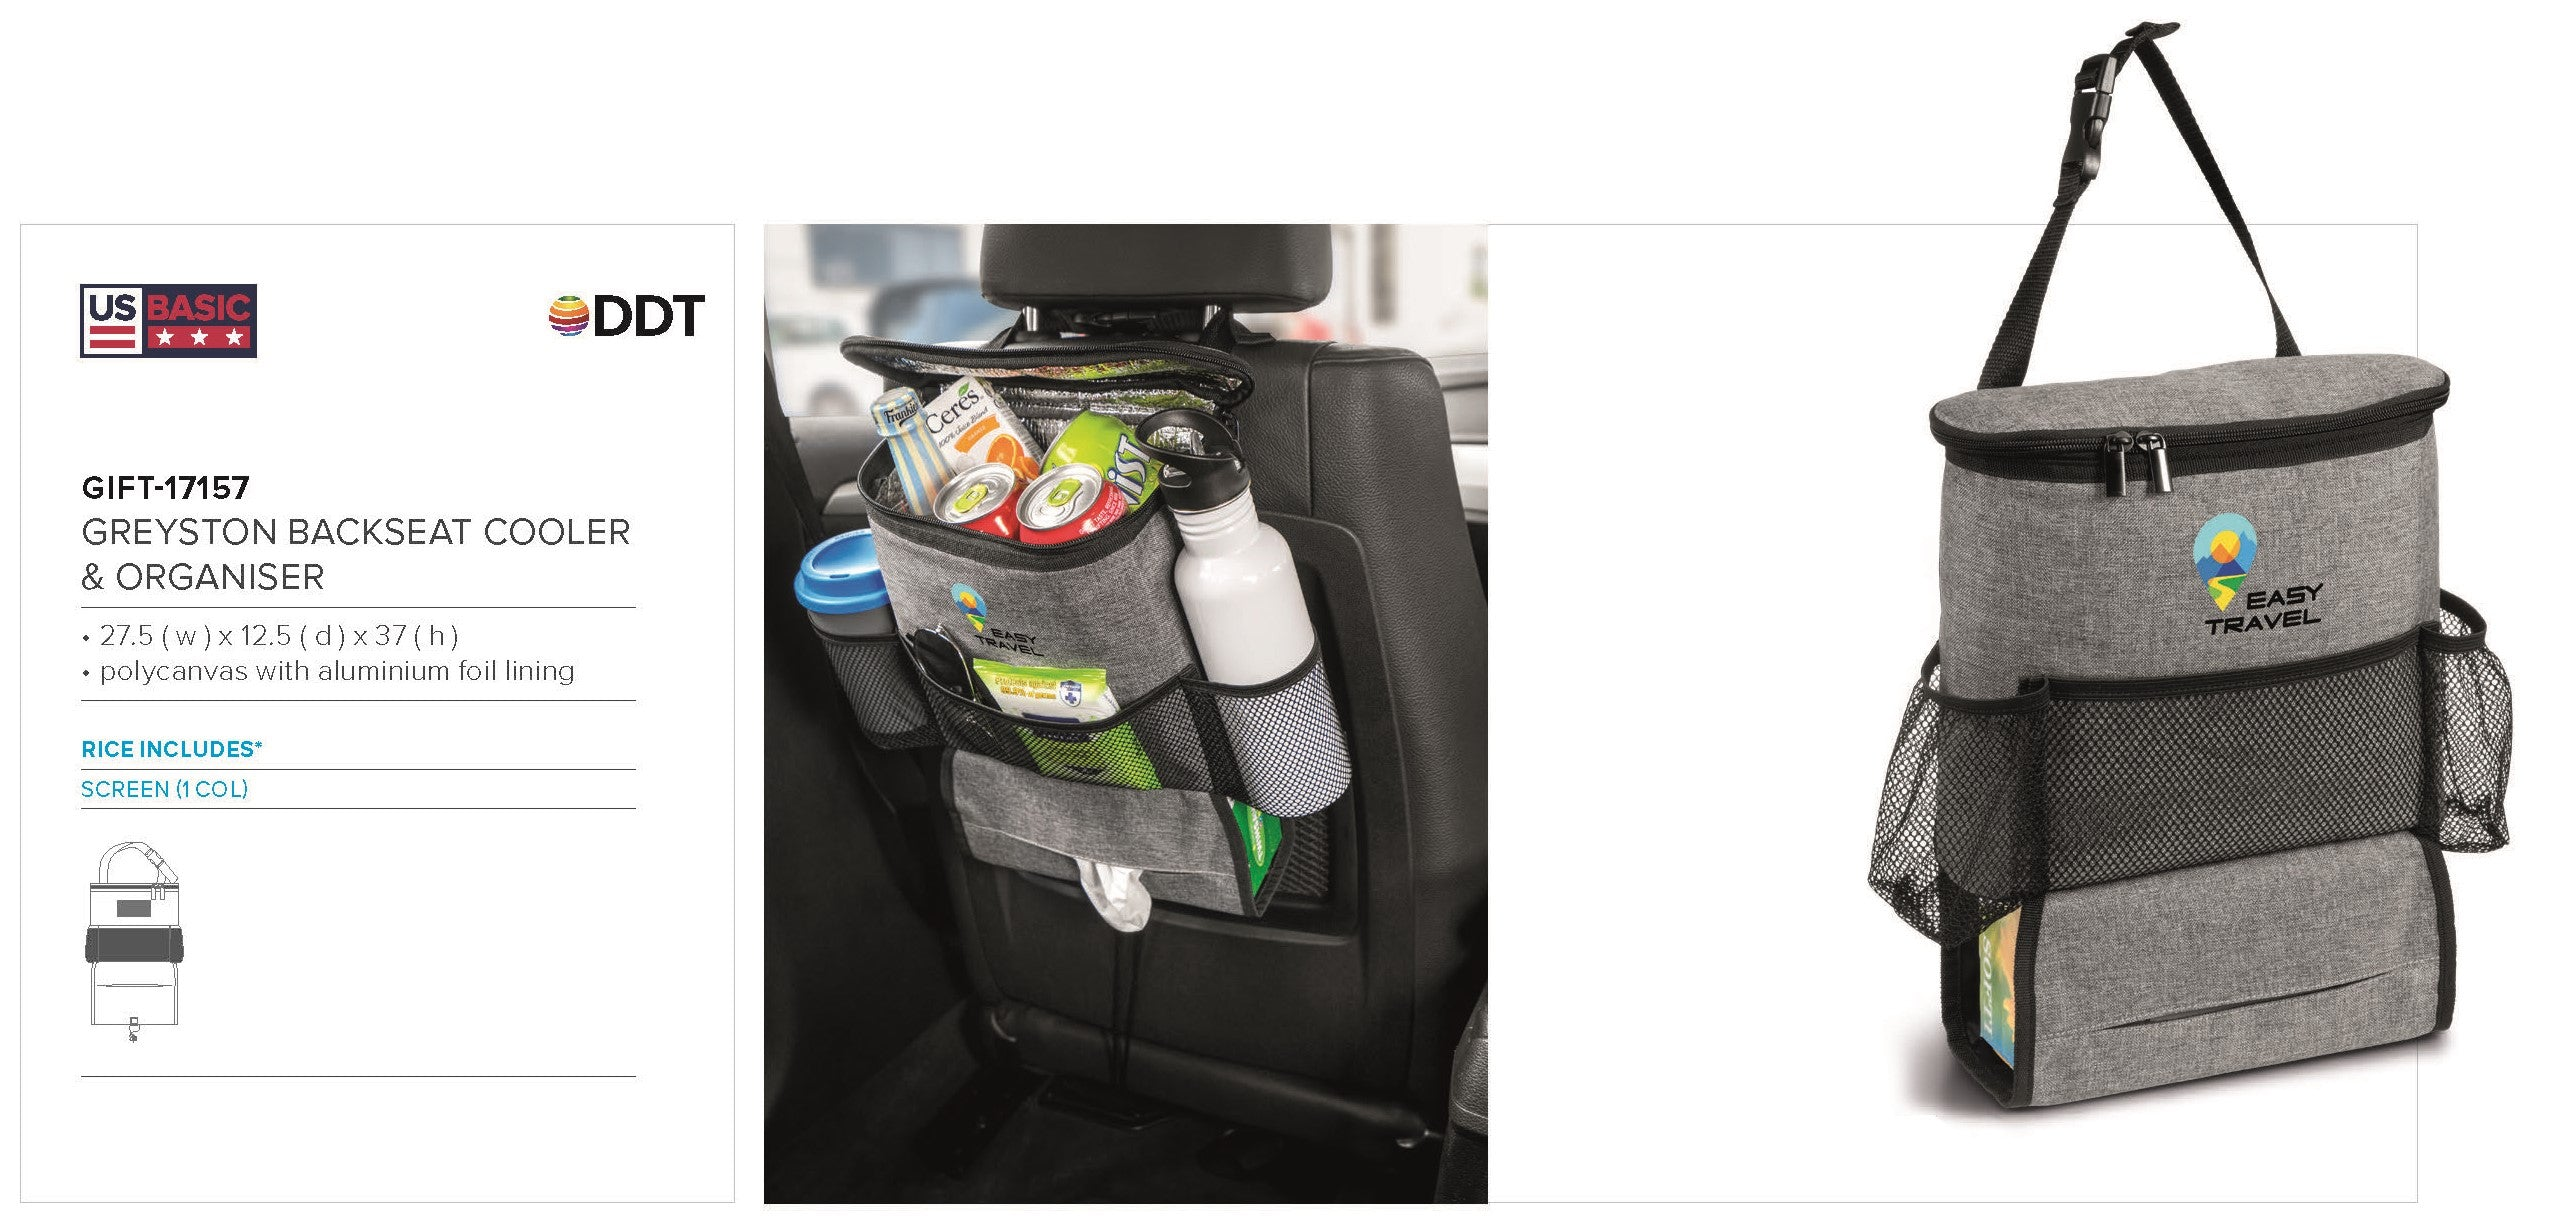 Greyston Backseat Cooler & Organiser